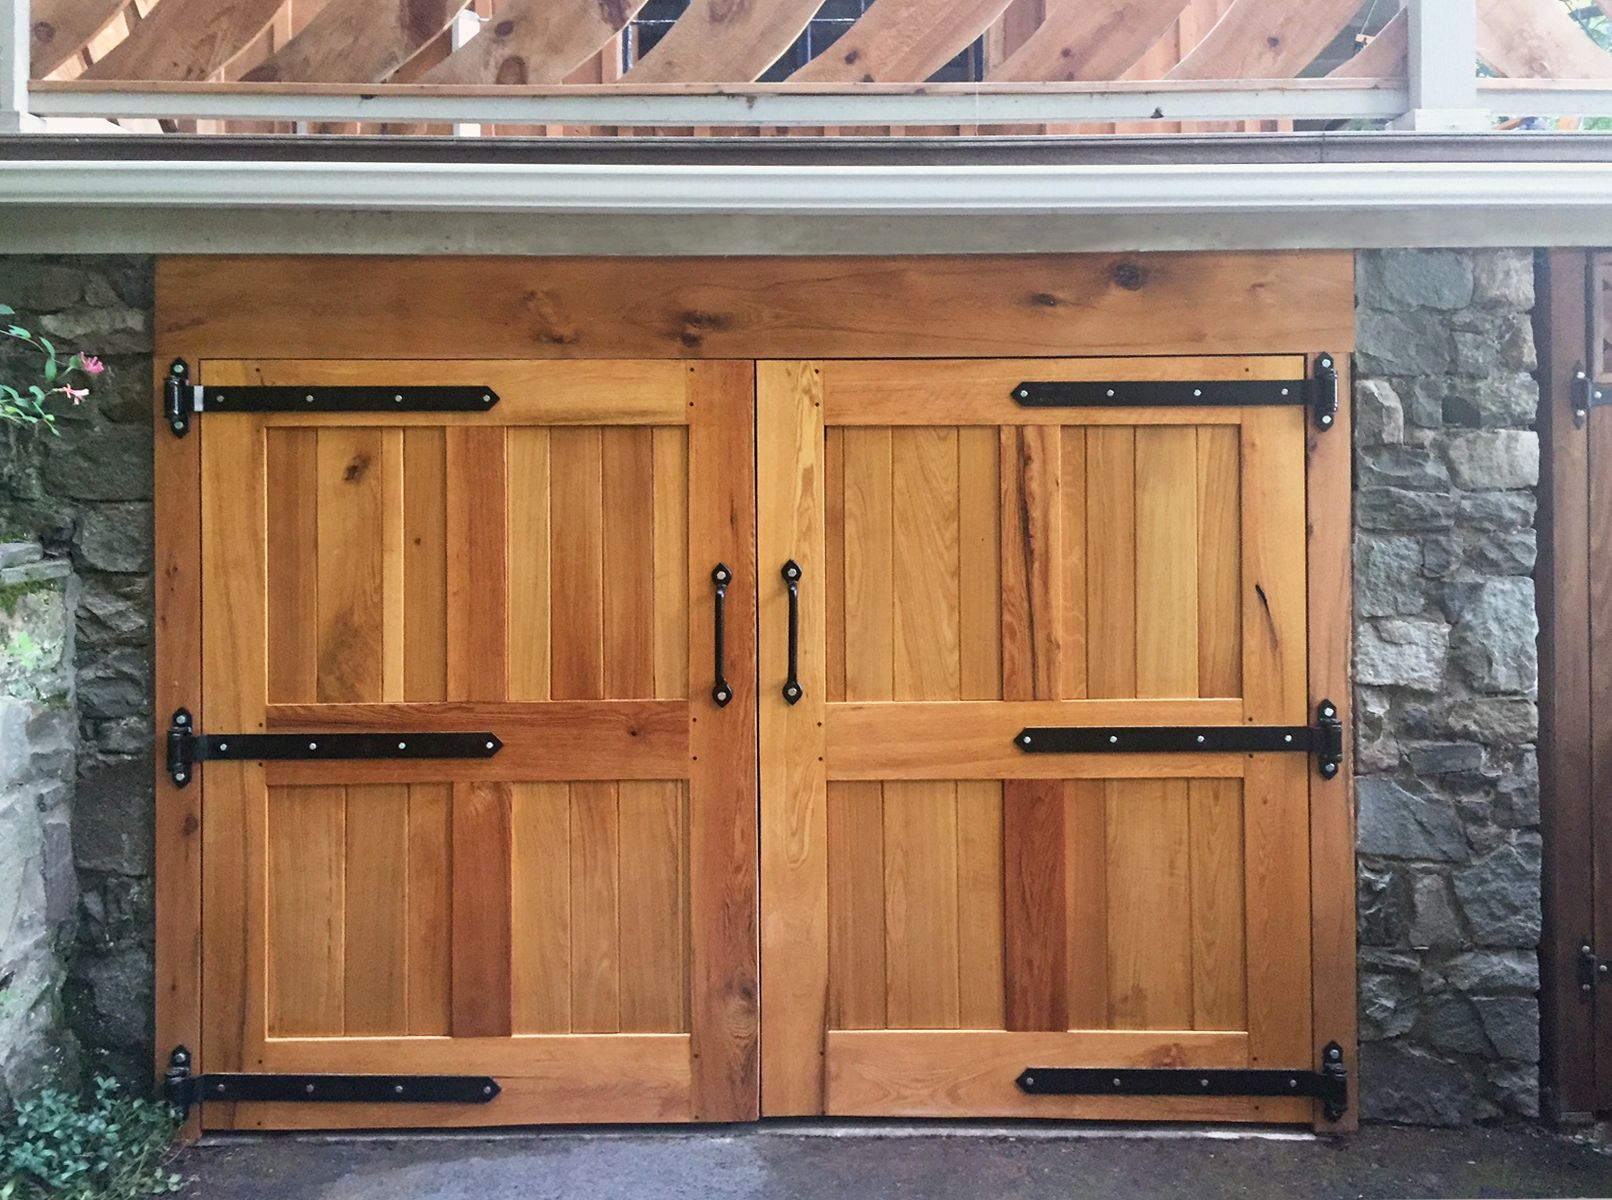 Rw Hardware Barn Door Hinges Rustic Barn Door Hardware Barn Door